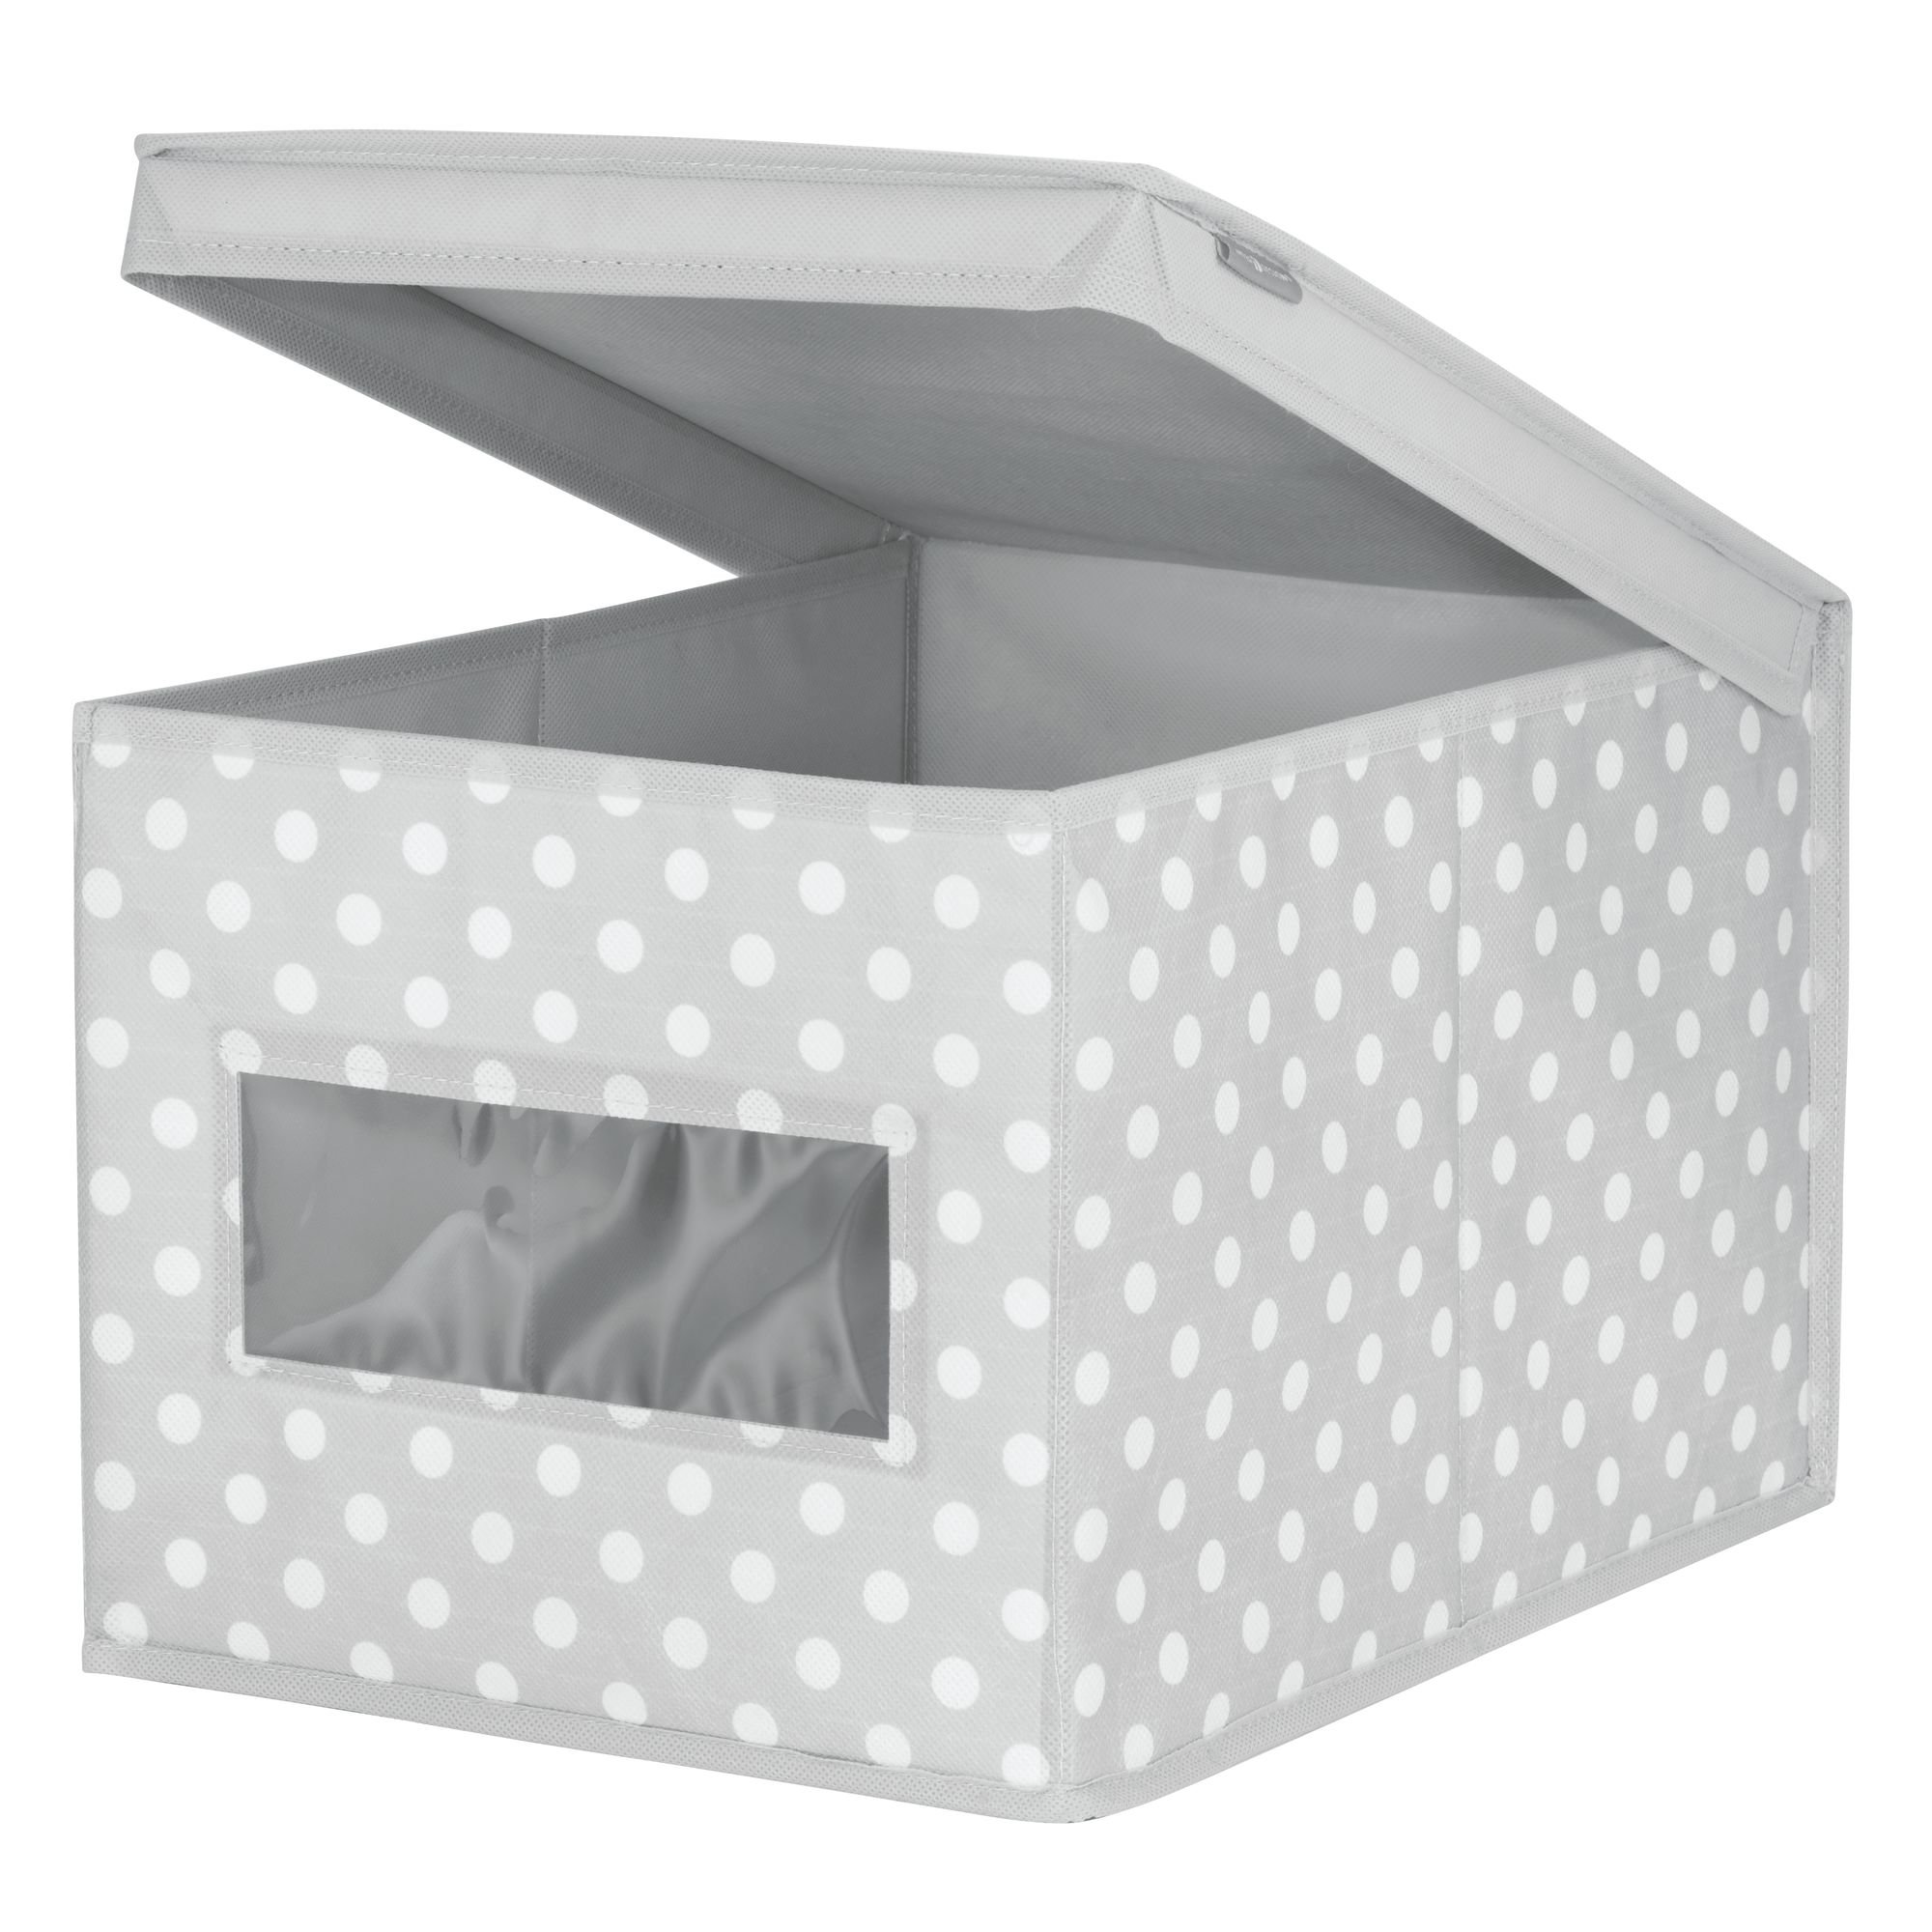 mDesign Soft Stackable Fabric Closet Storage Organizer Holder Box - Clear Window, Attached Hinged Lid, for Child/Kids Room, Nursery - Polka Dot Pattern - Large, Pack of 2, Light Gray with White Dots by mDesign (Image #4)